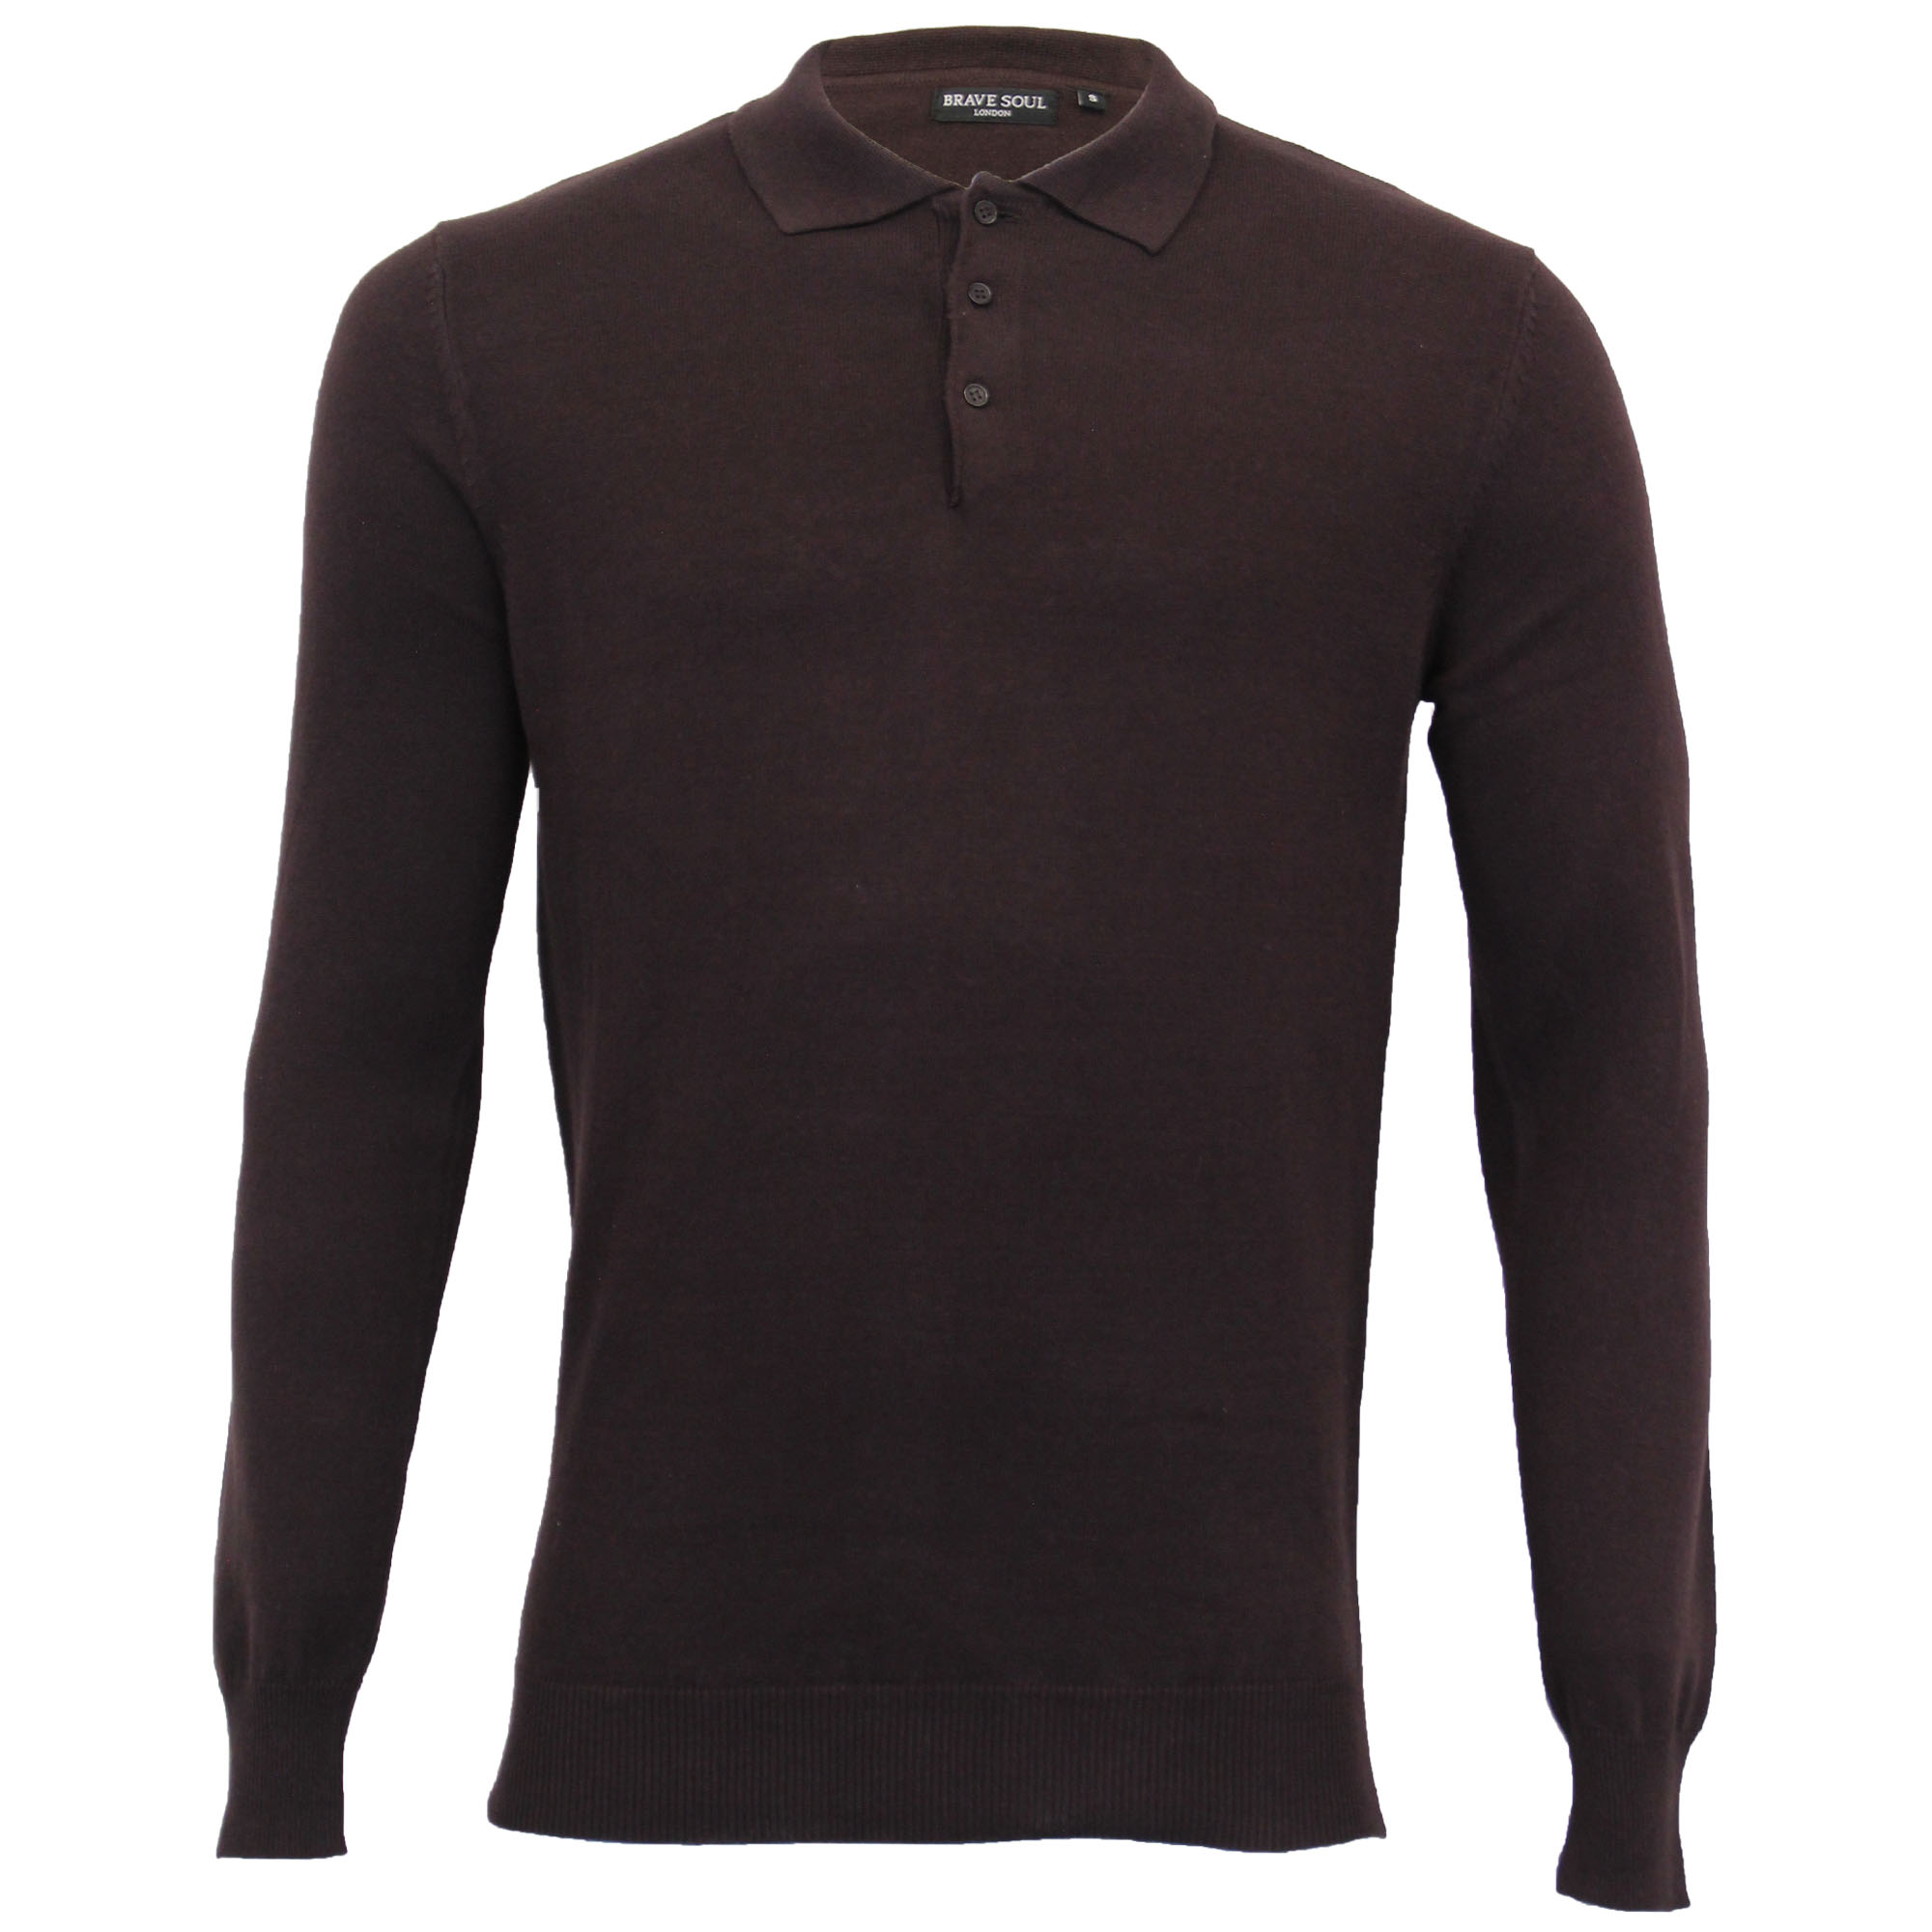 Mens-Knitted-Jumper-Brave-Soul-Polo-Top-Sweater-PLACKET-Pullover-Lightweight-New thumbnail 2